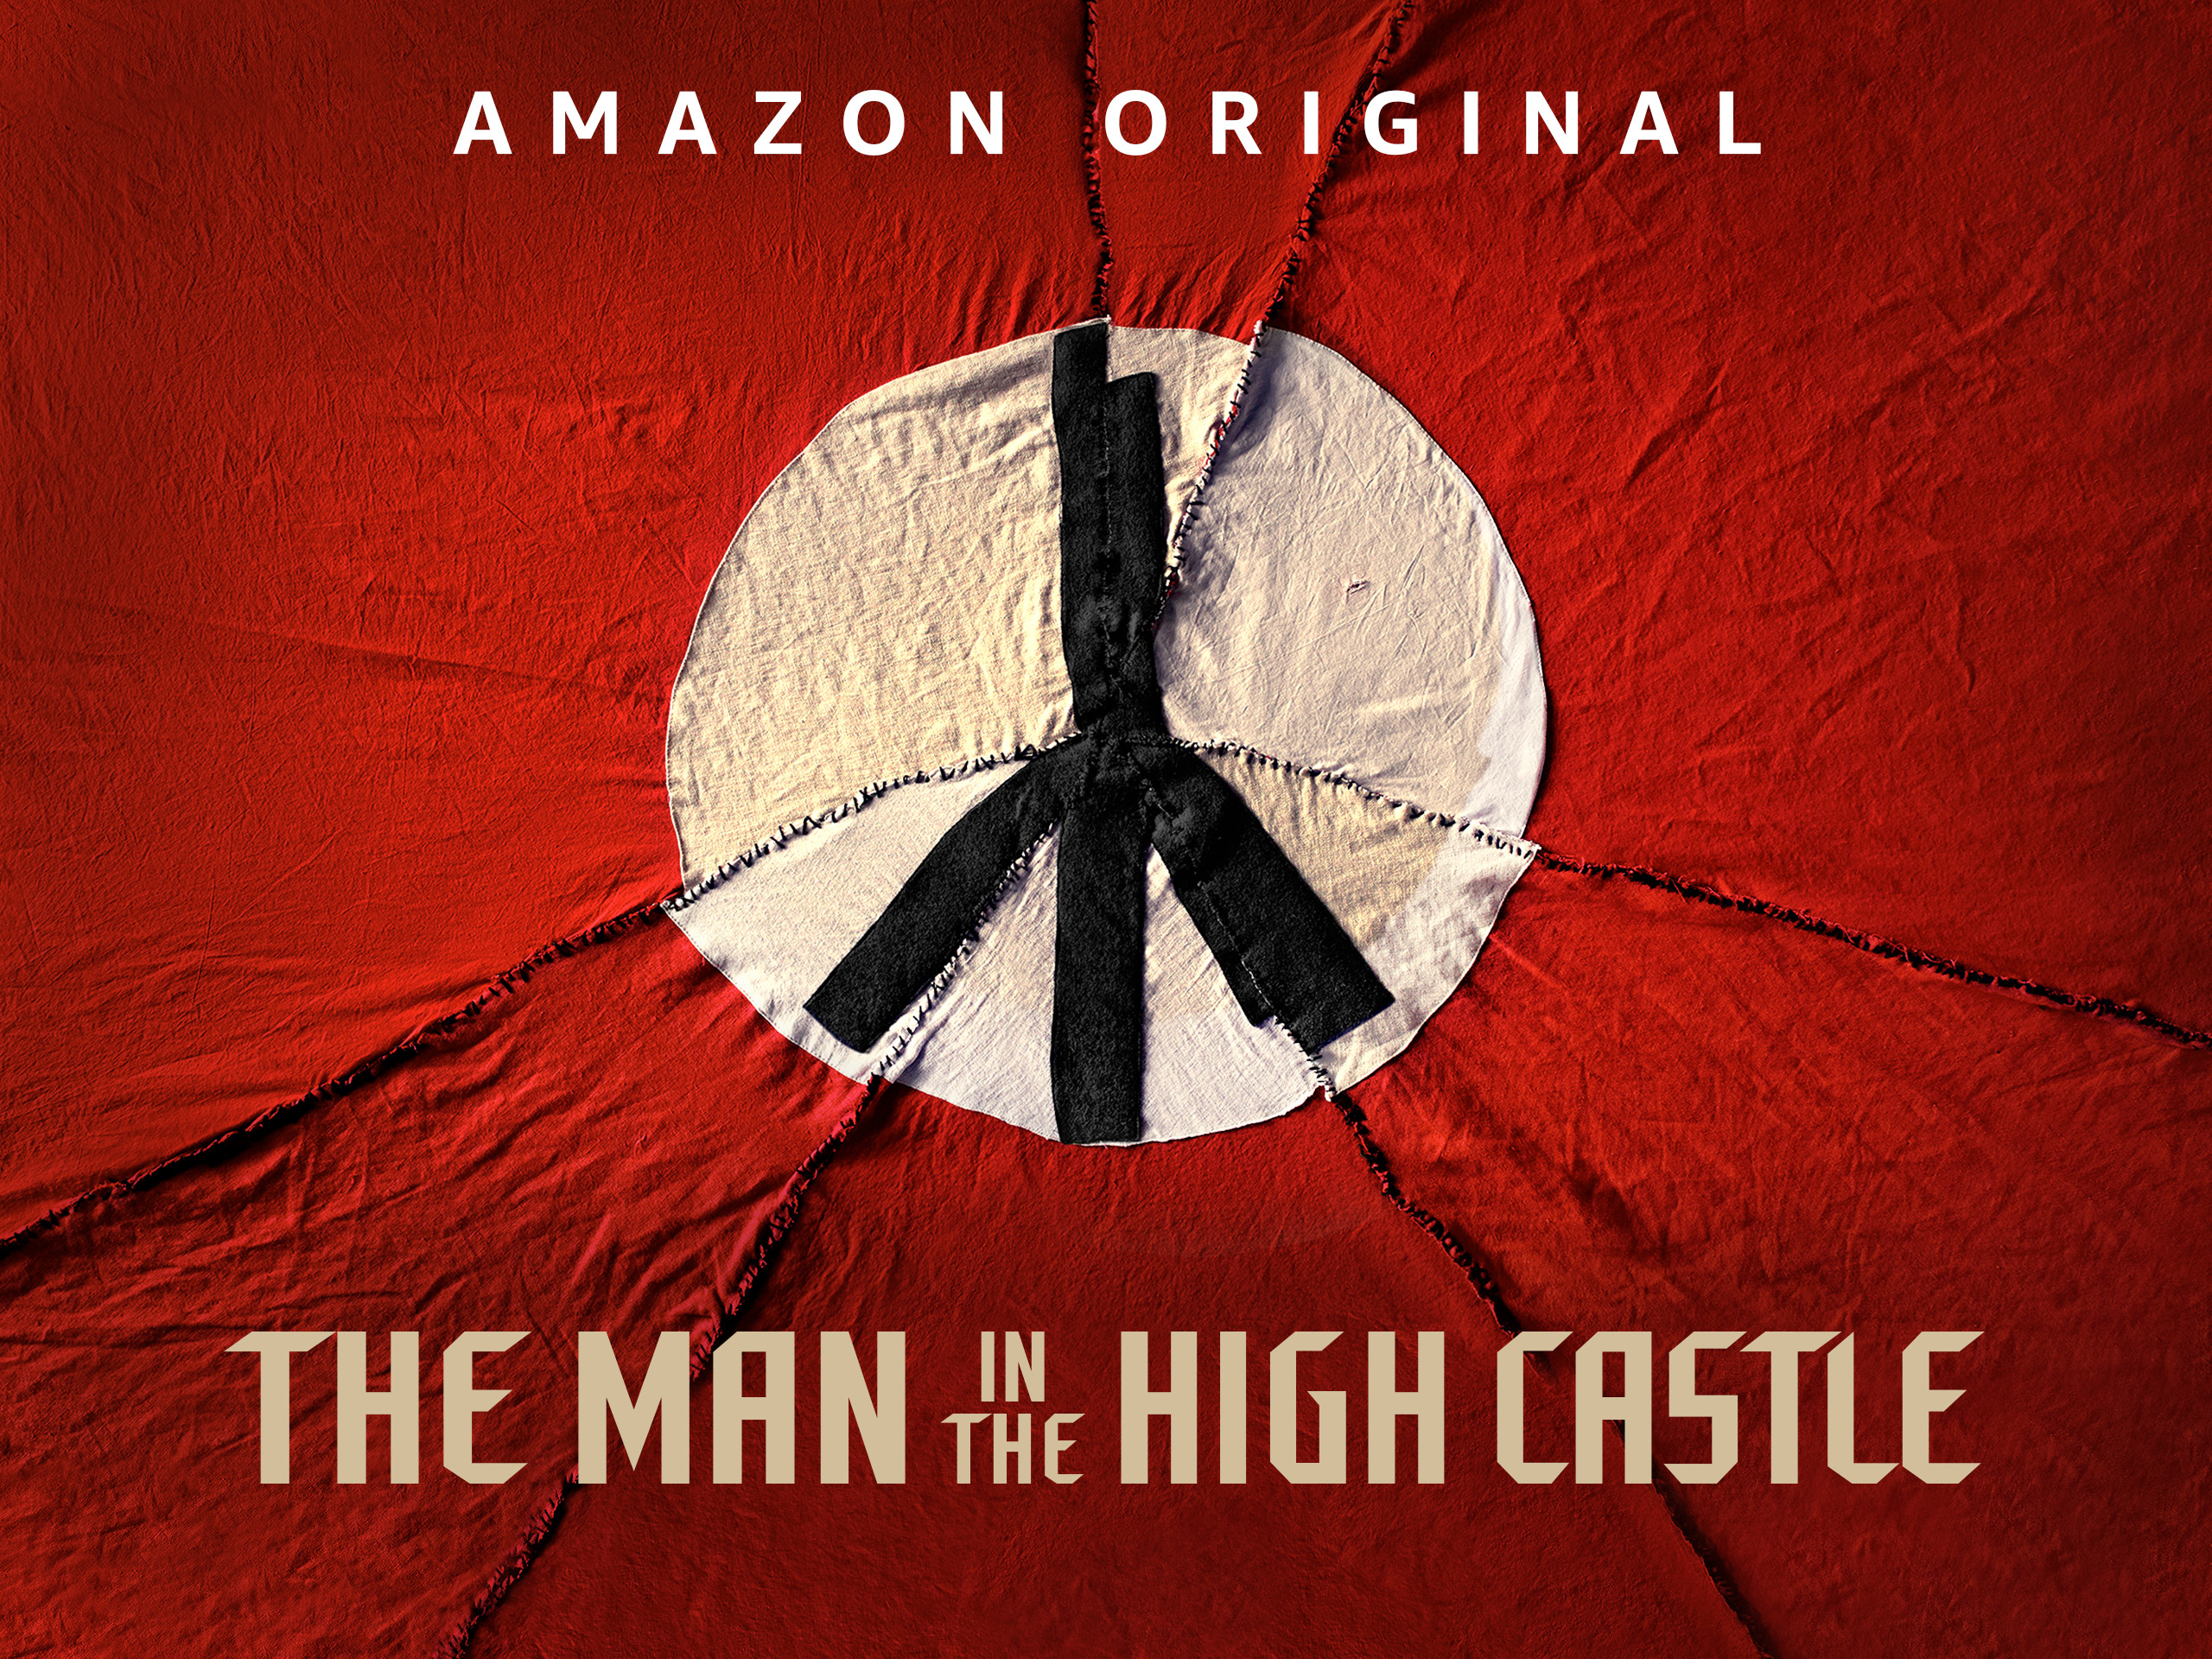 Prime Video: The Man in the High Castle - Season 1